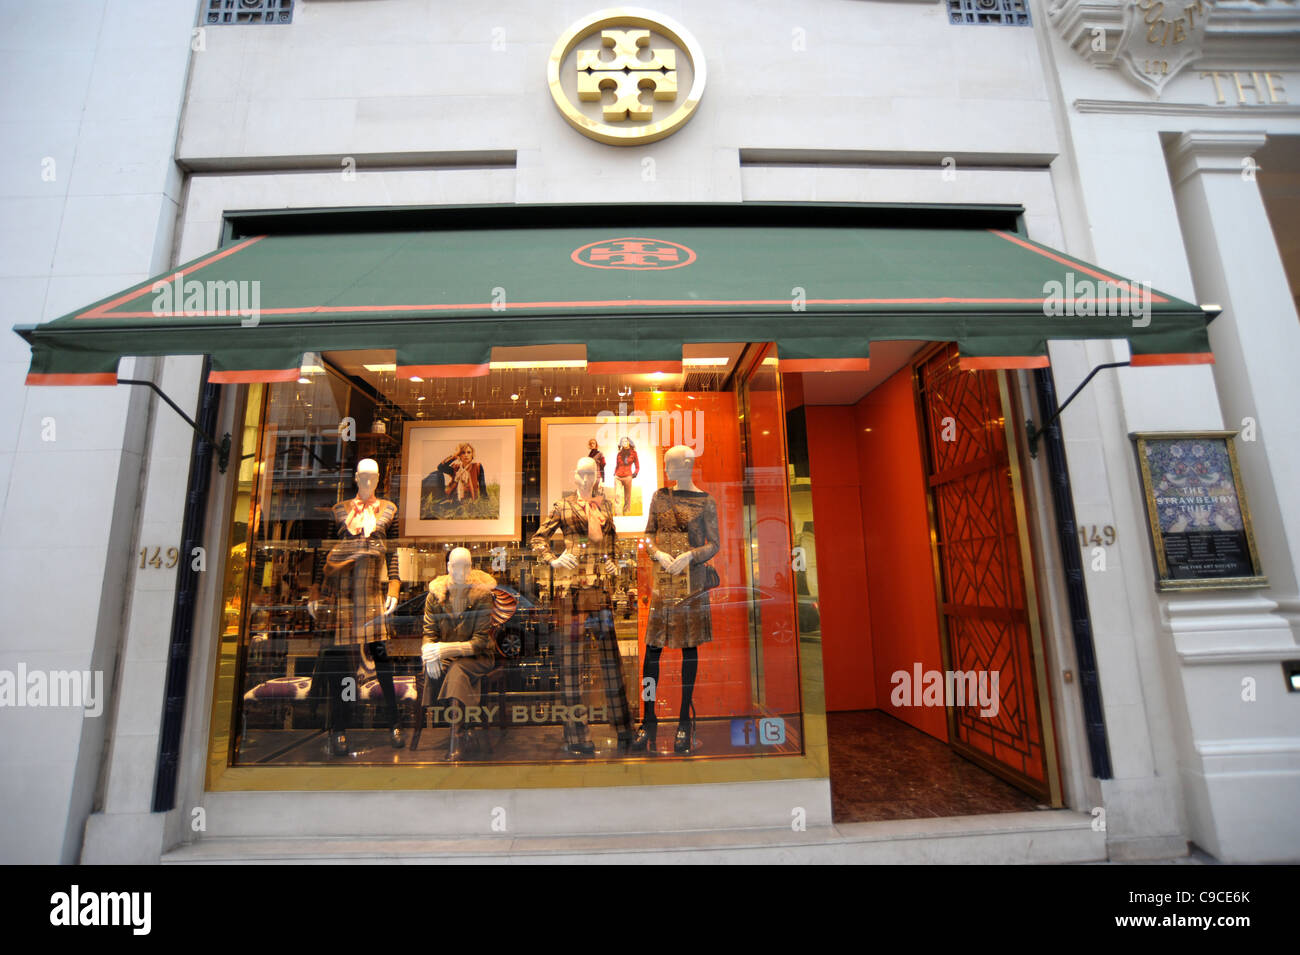 eb0baa98962 Exterior shot of the Tory Burch store on Brutton Street London England 2011  - Image Copyright